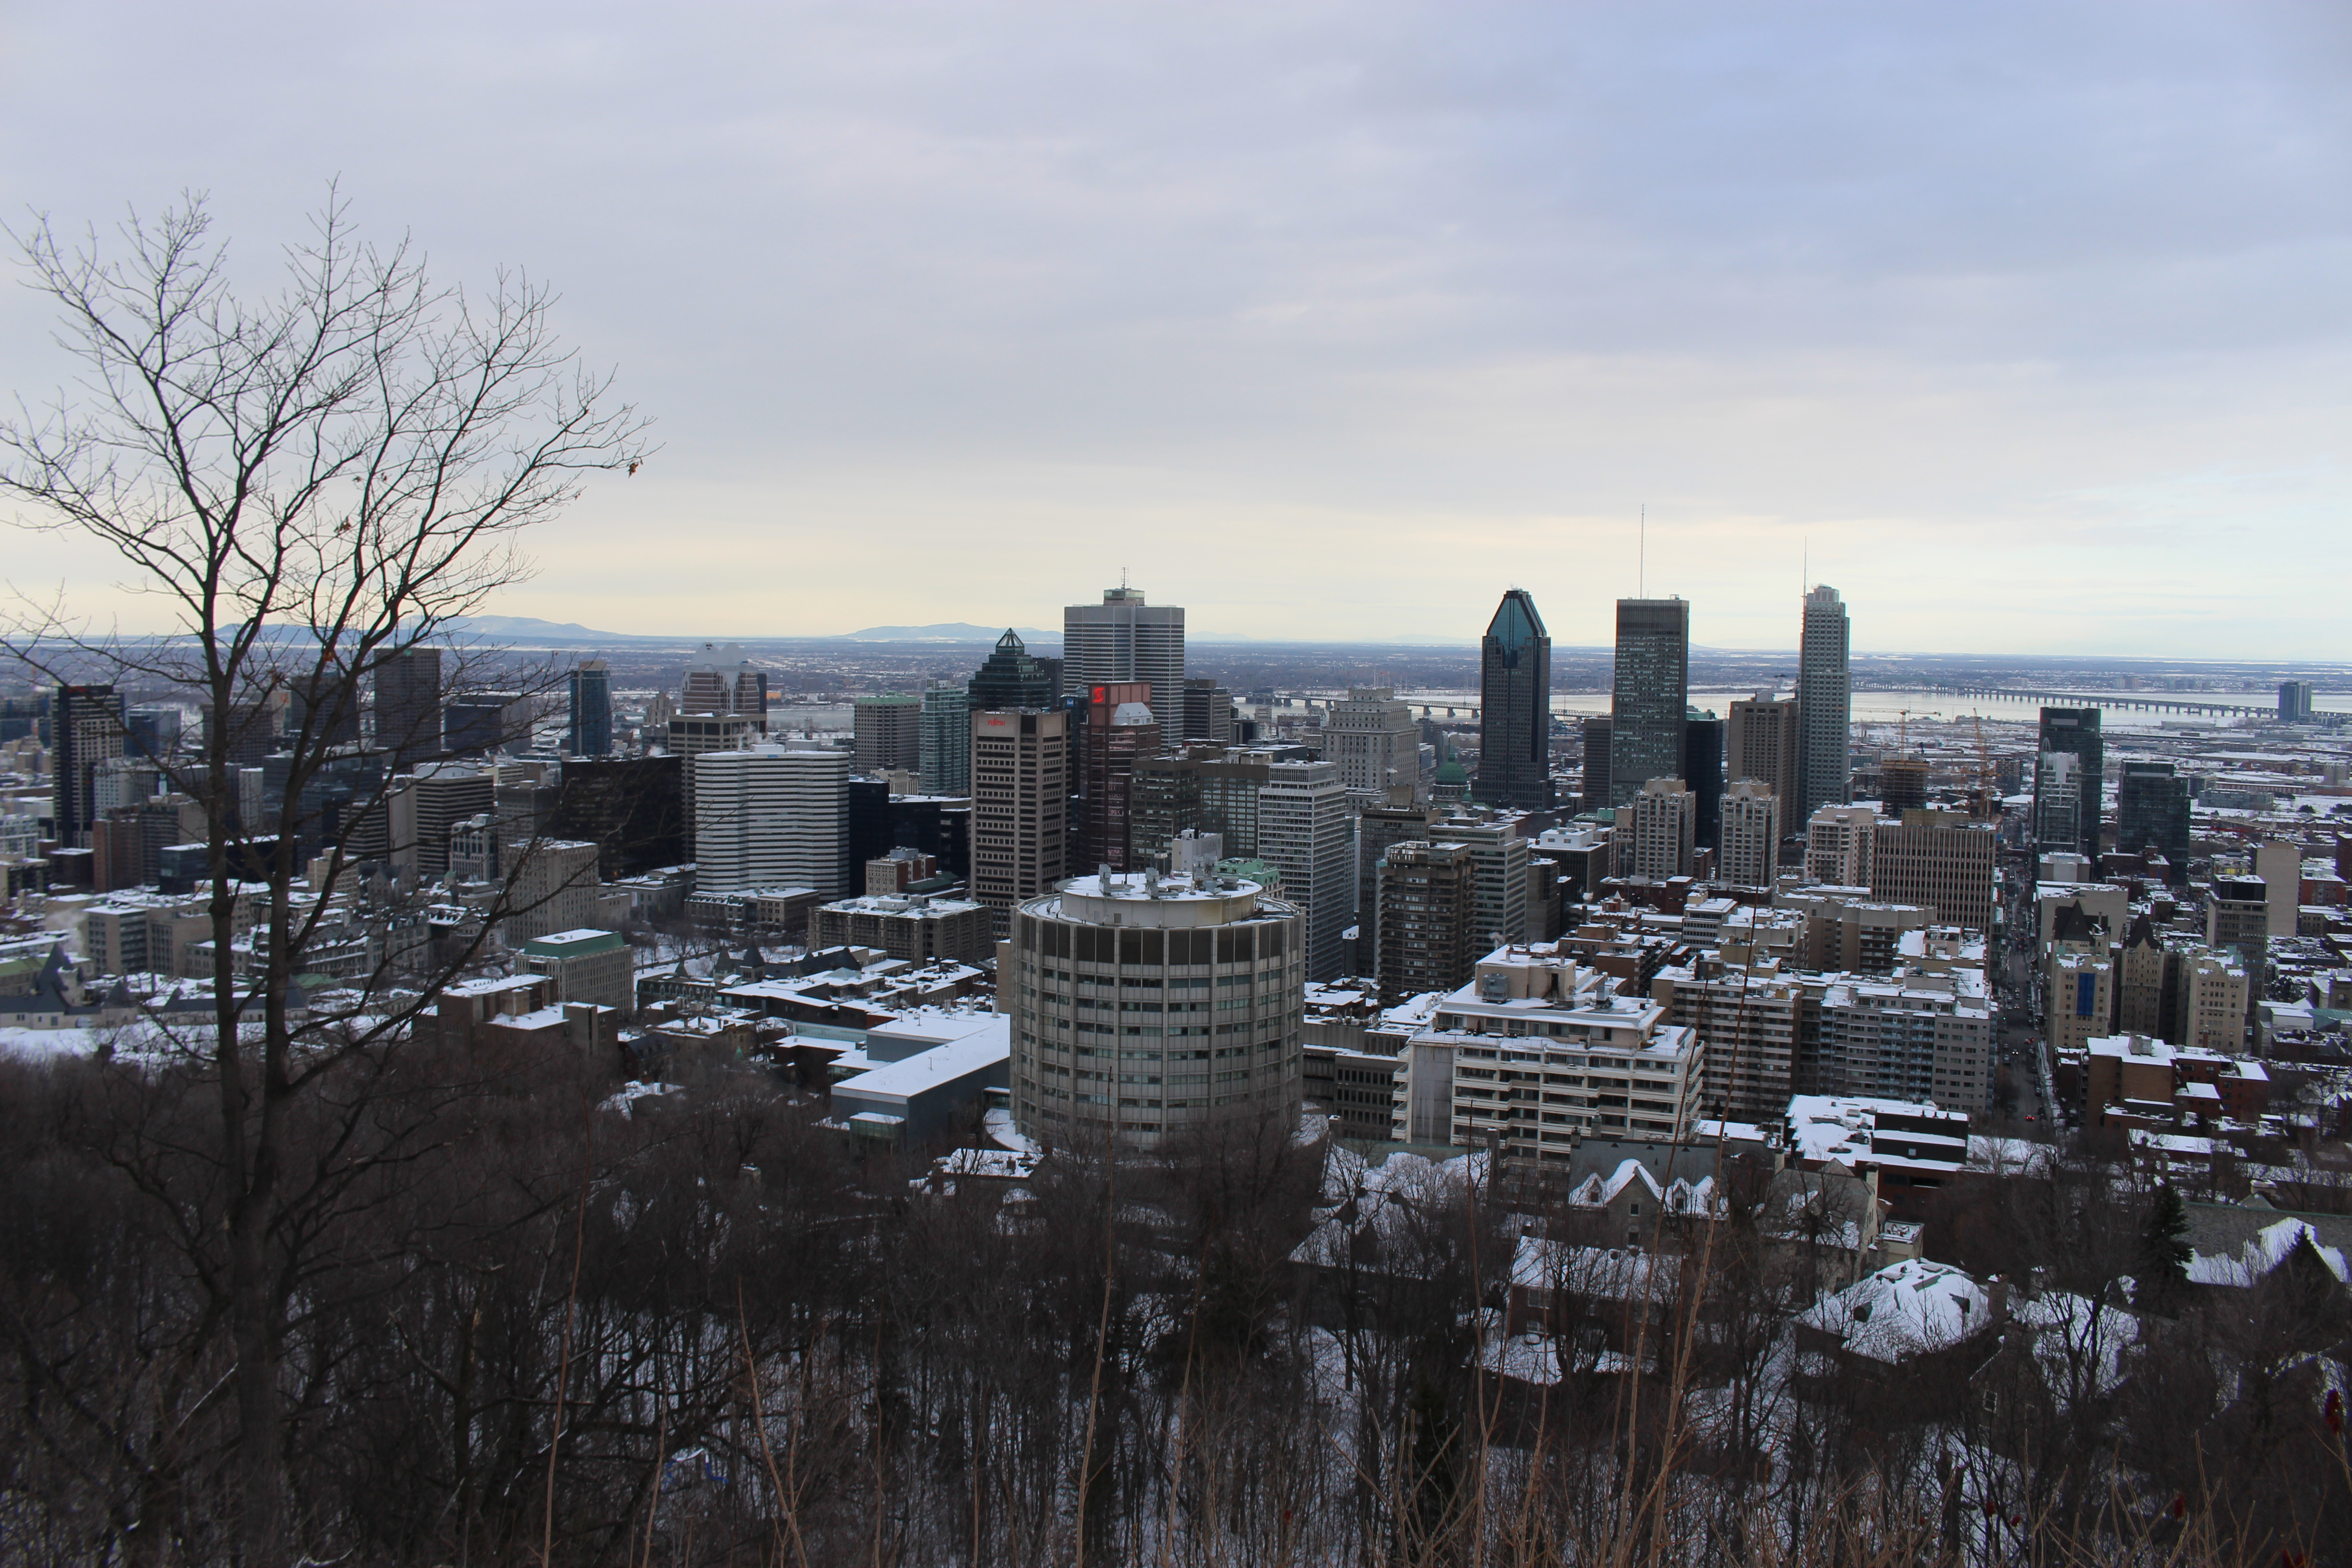 List of cities in Canada by popularity and number